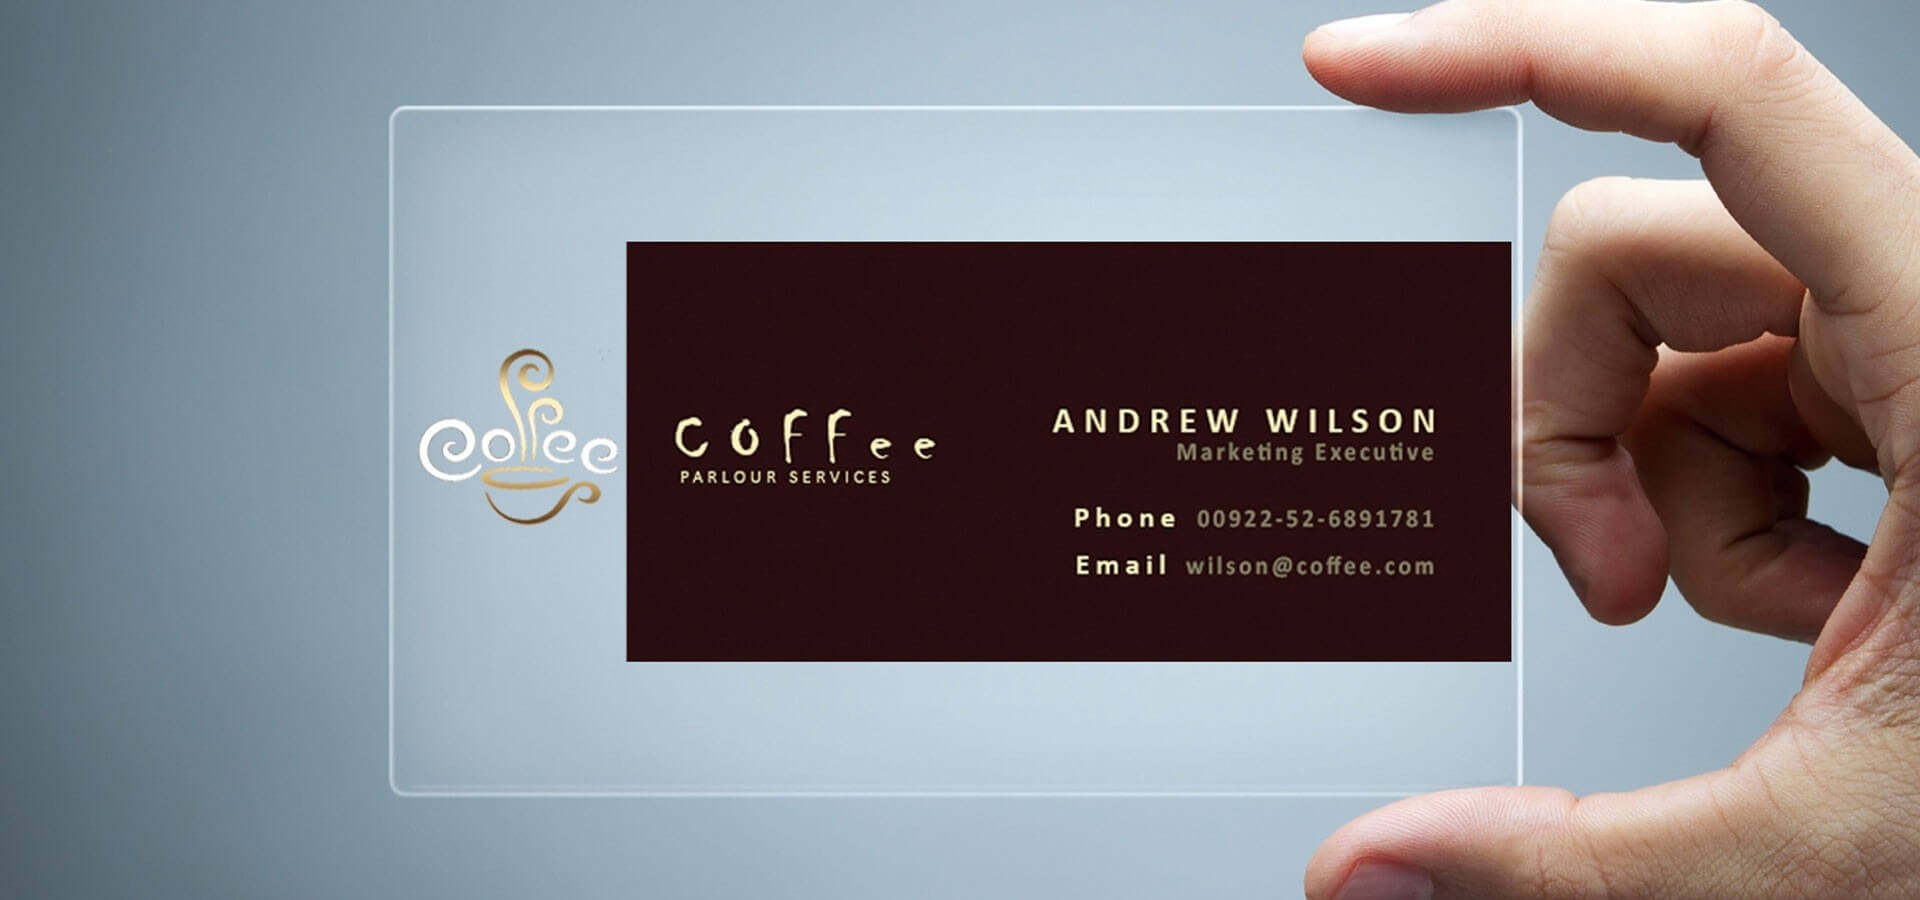 021 Trancprnt Business Card Template Ideas Construction Within Coffee Business Card Template Free